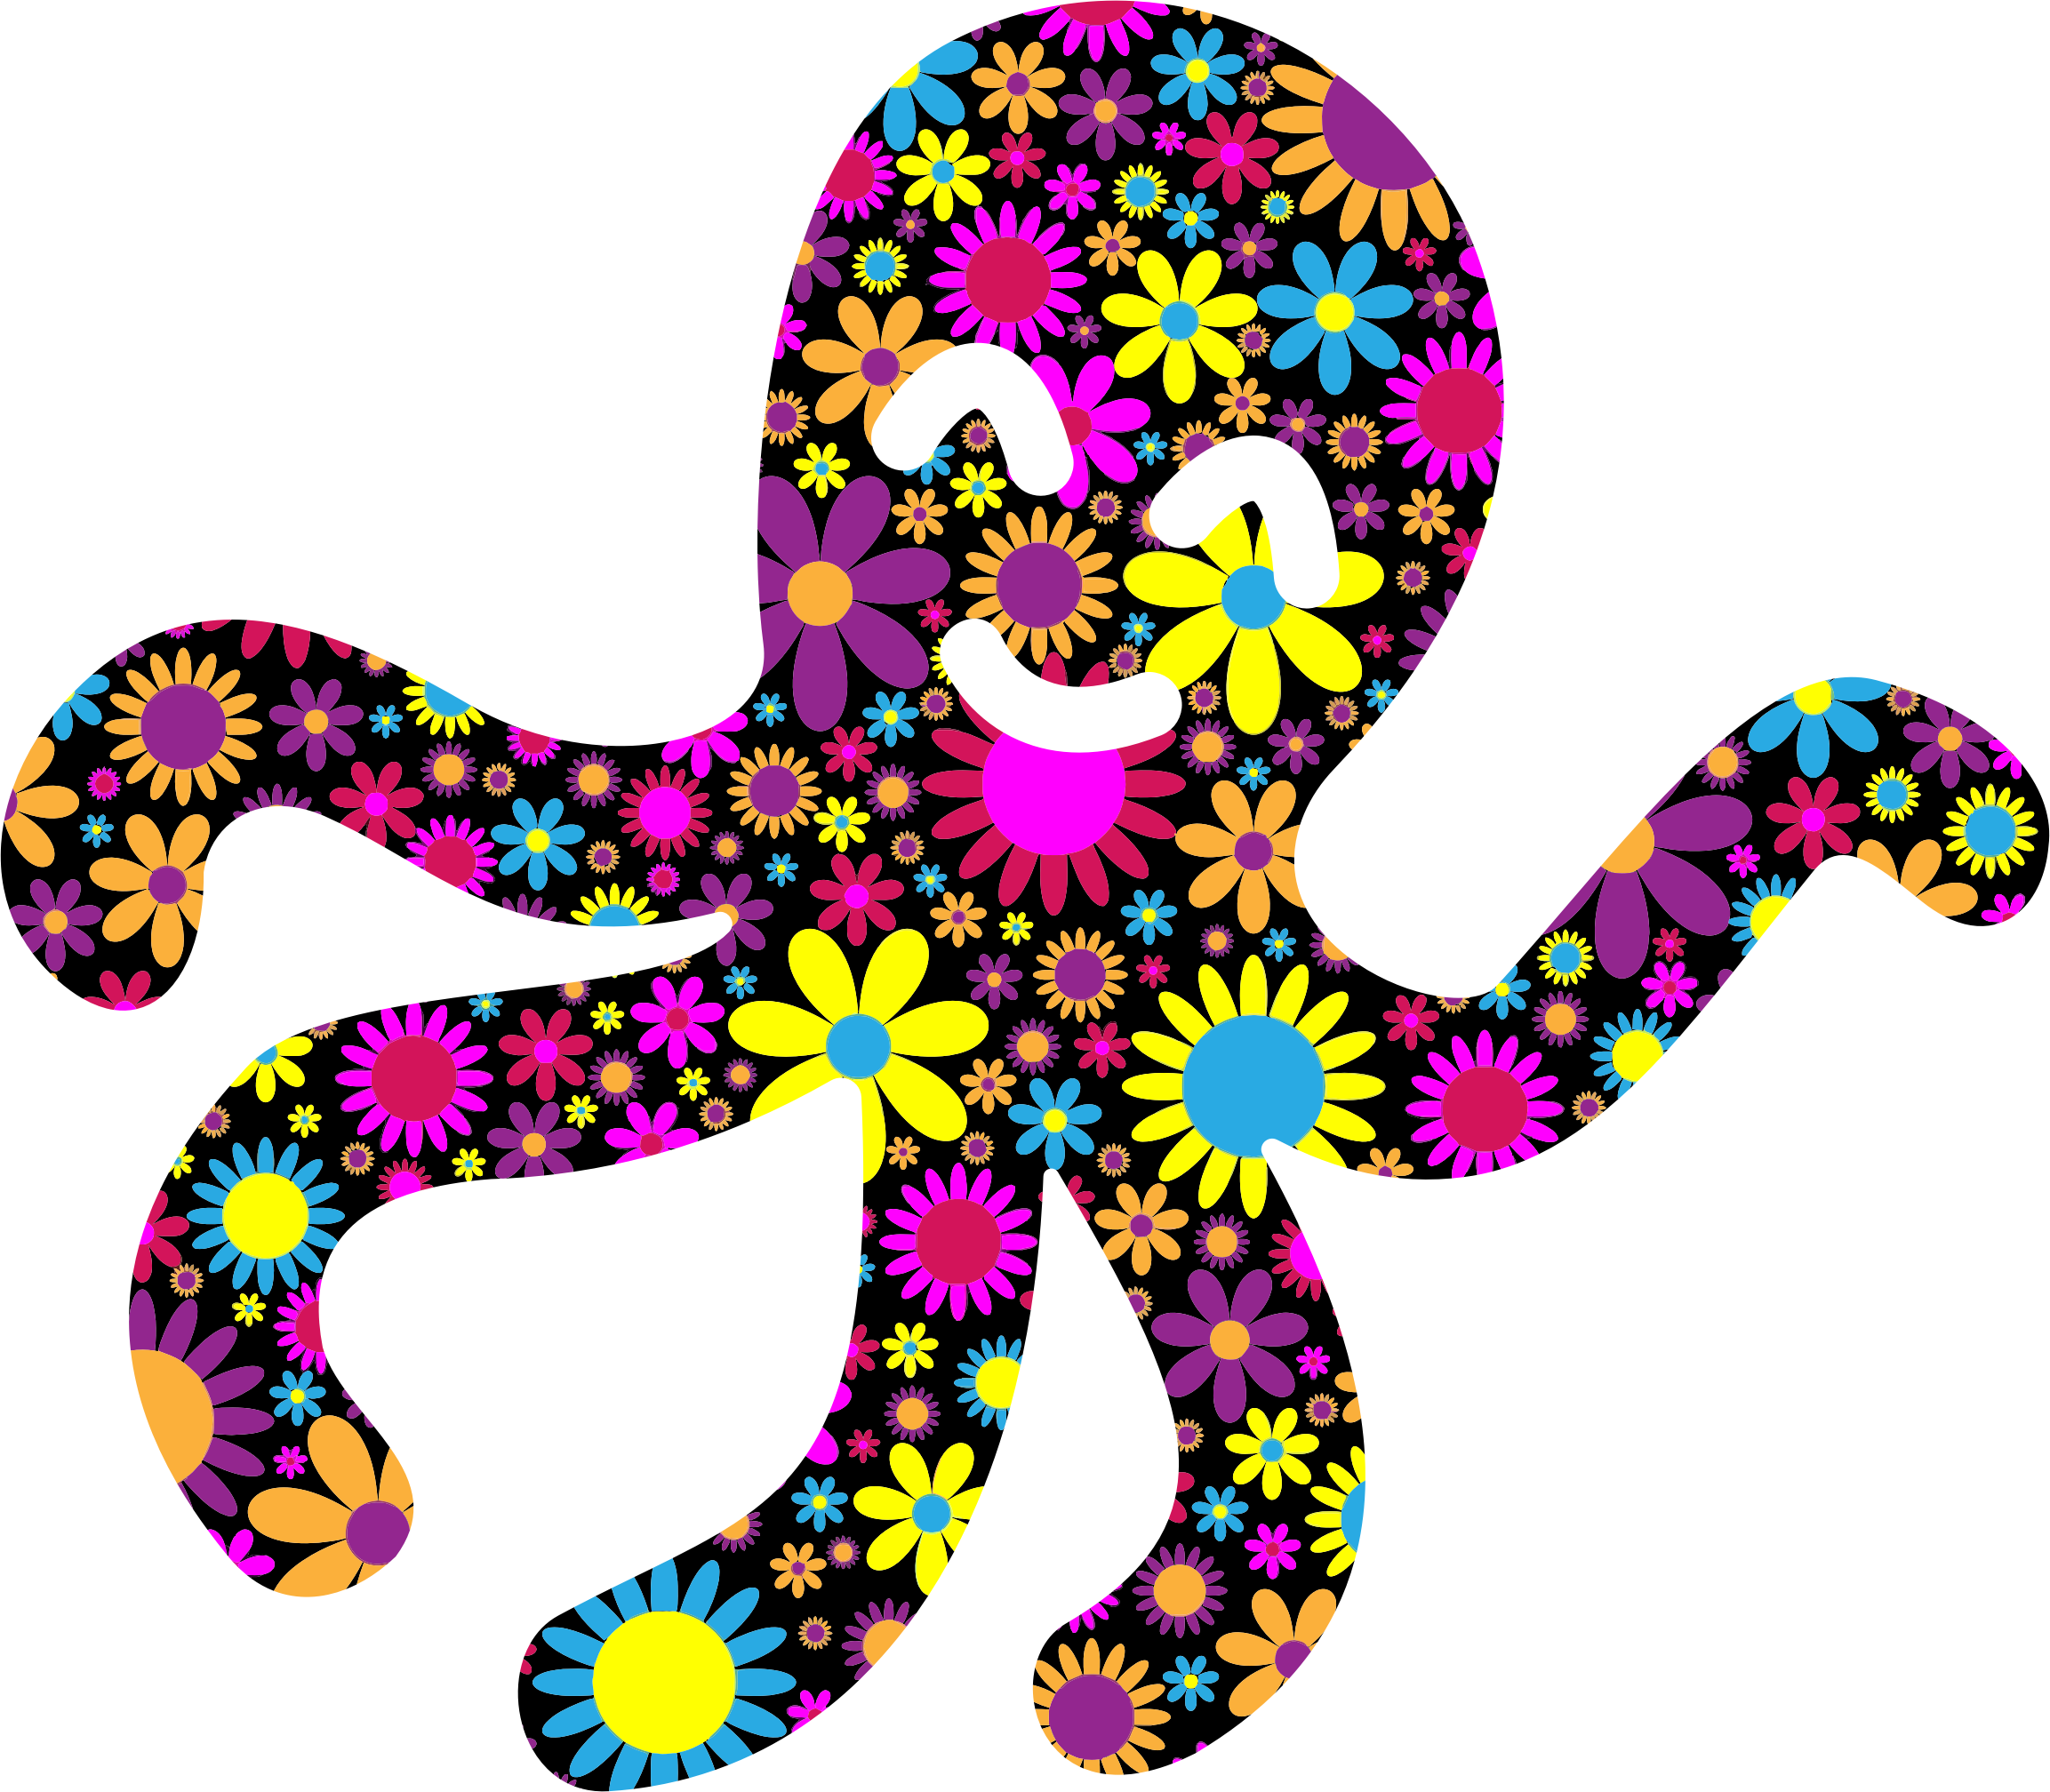 Floral Kid Octopi Redrawn by GDJ